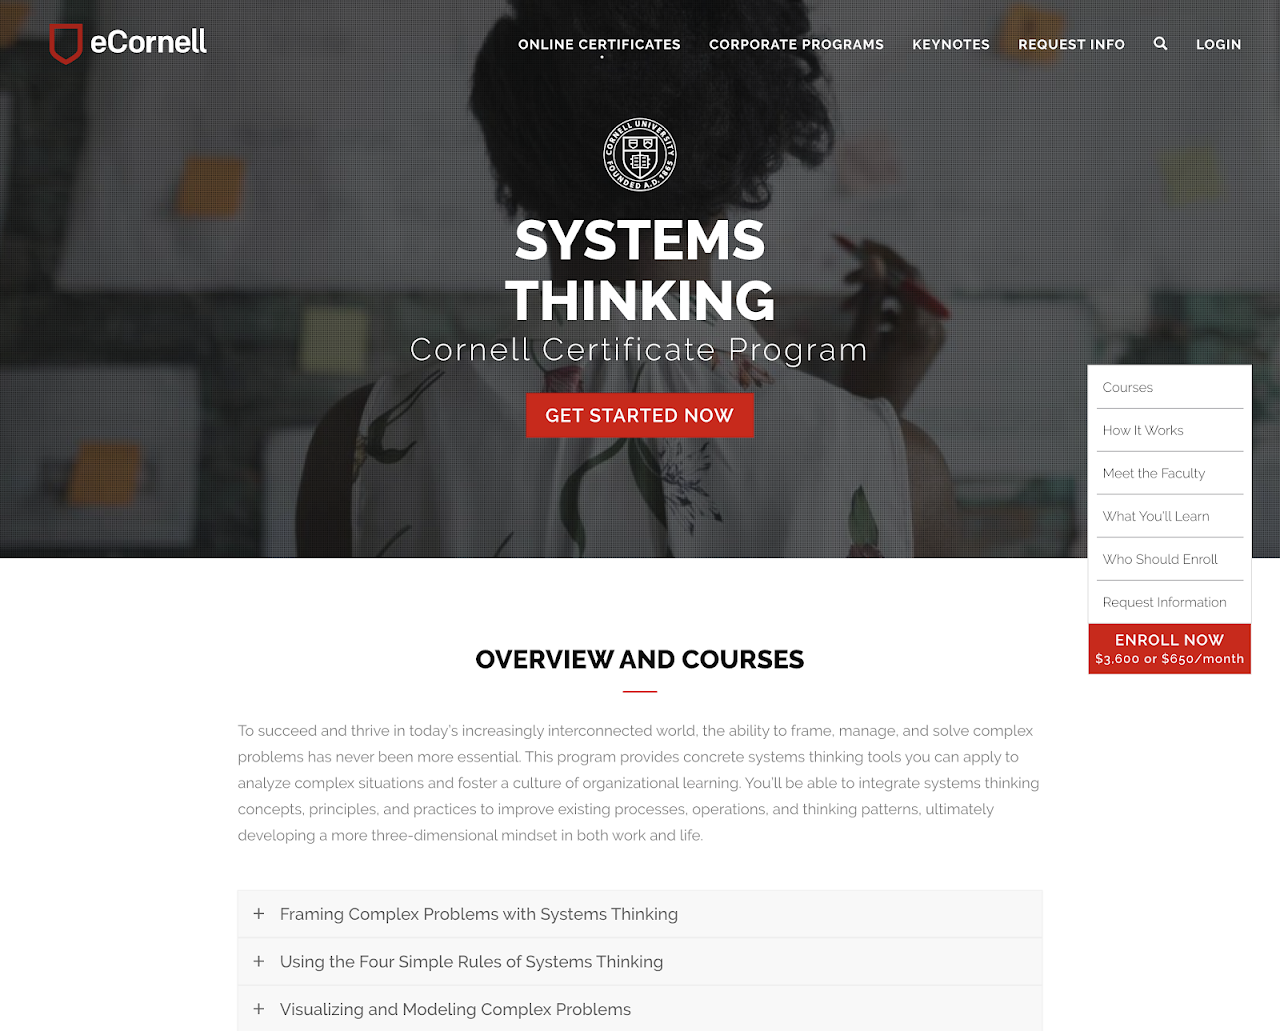 Cornell University Systems Thinking. Modeling, and Leadership Certificate. (online)